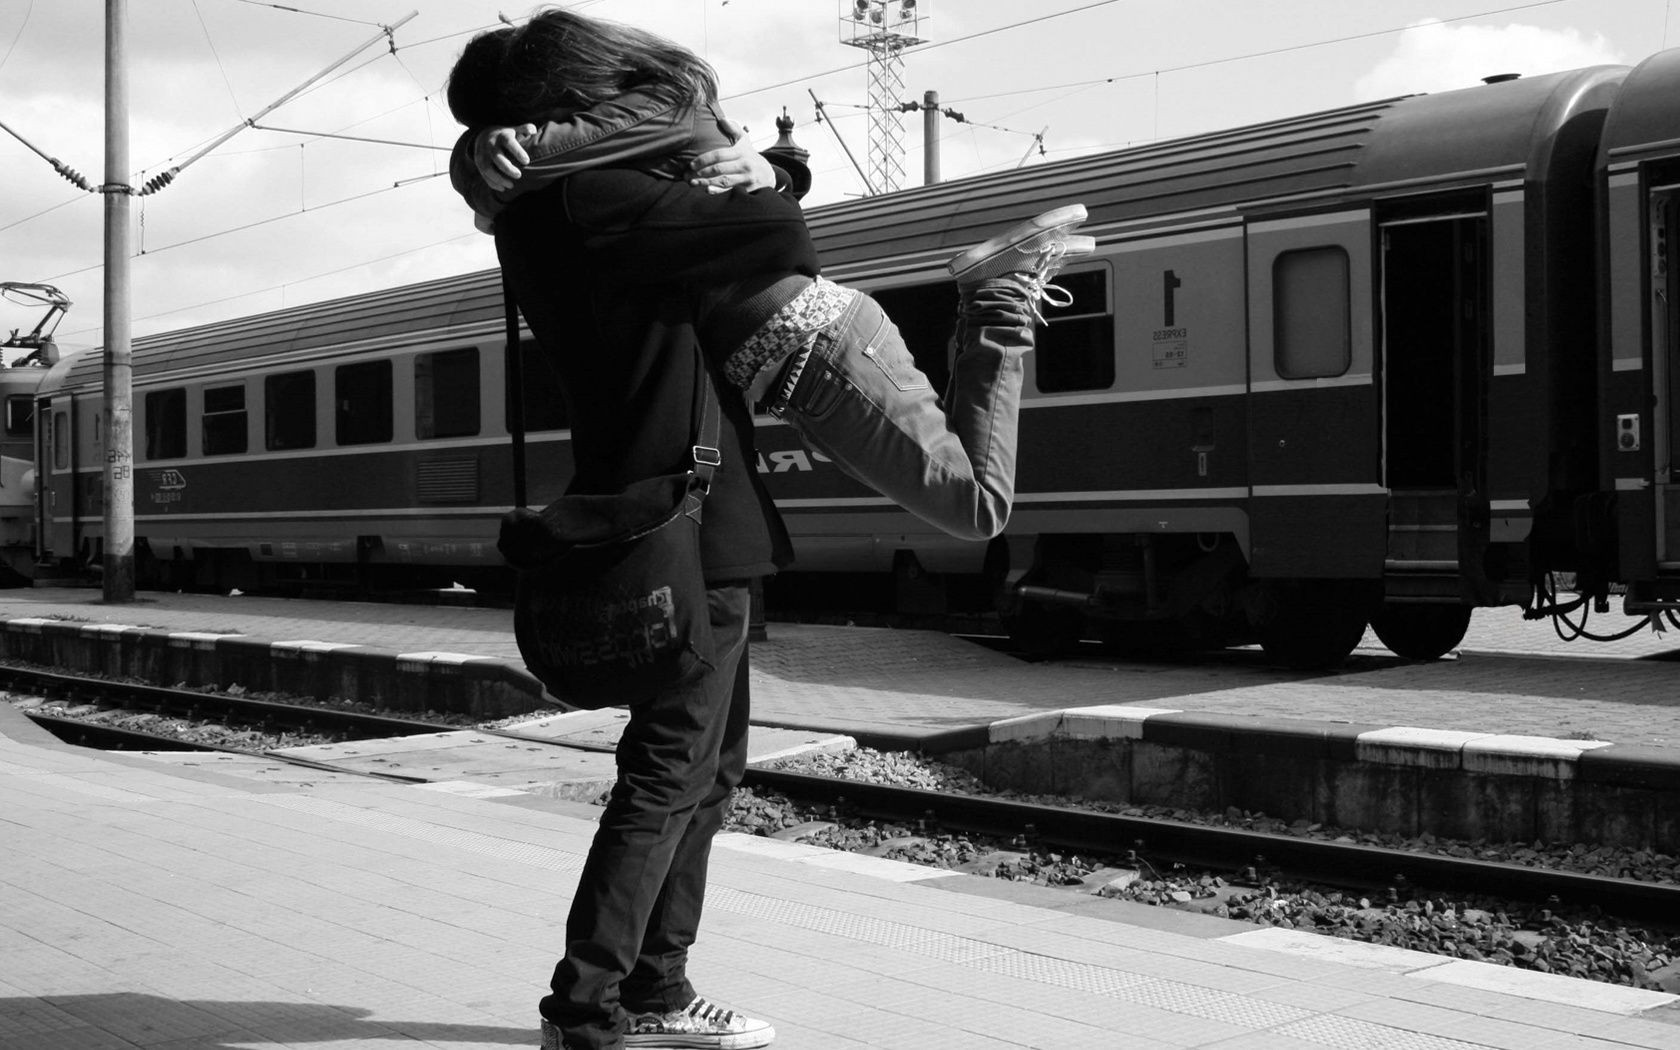 love and romance train railway transportation system vehicle adult man street one monochrome